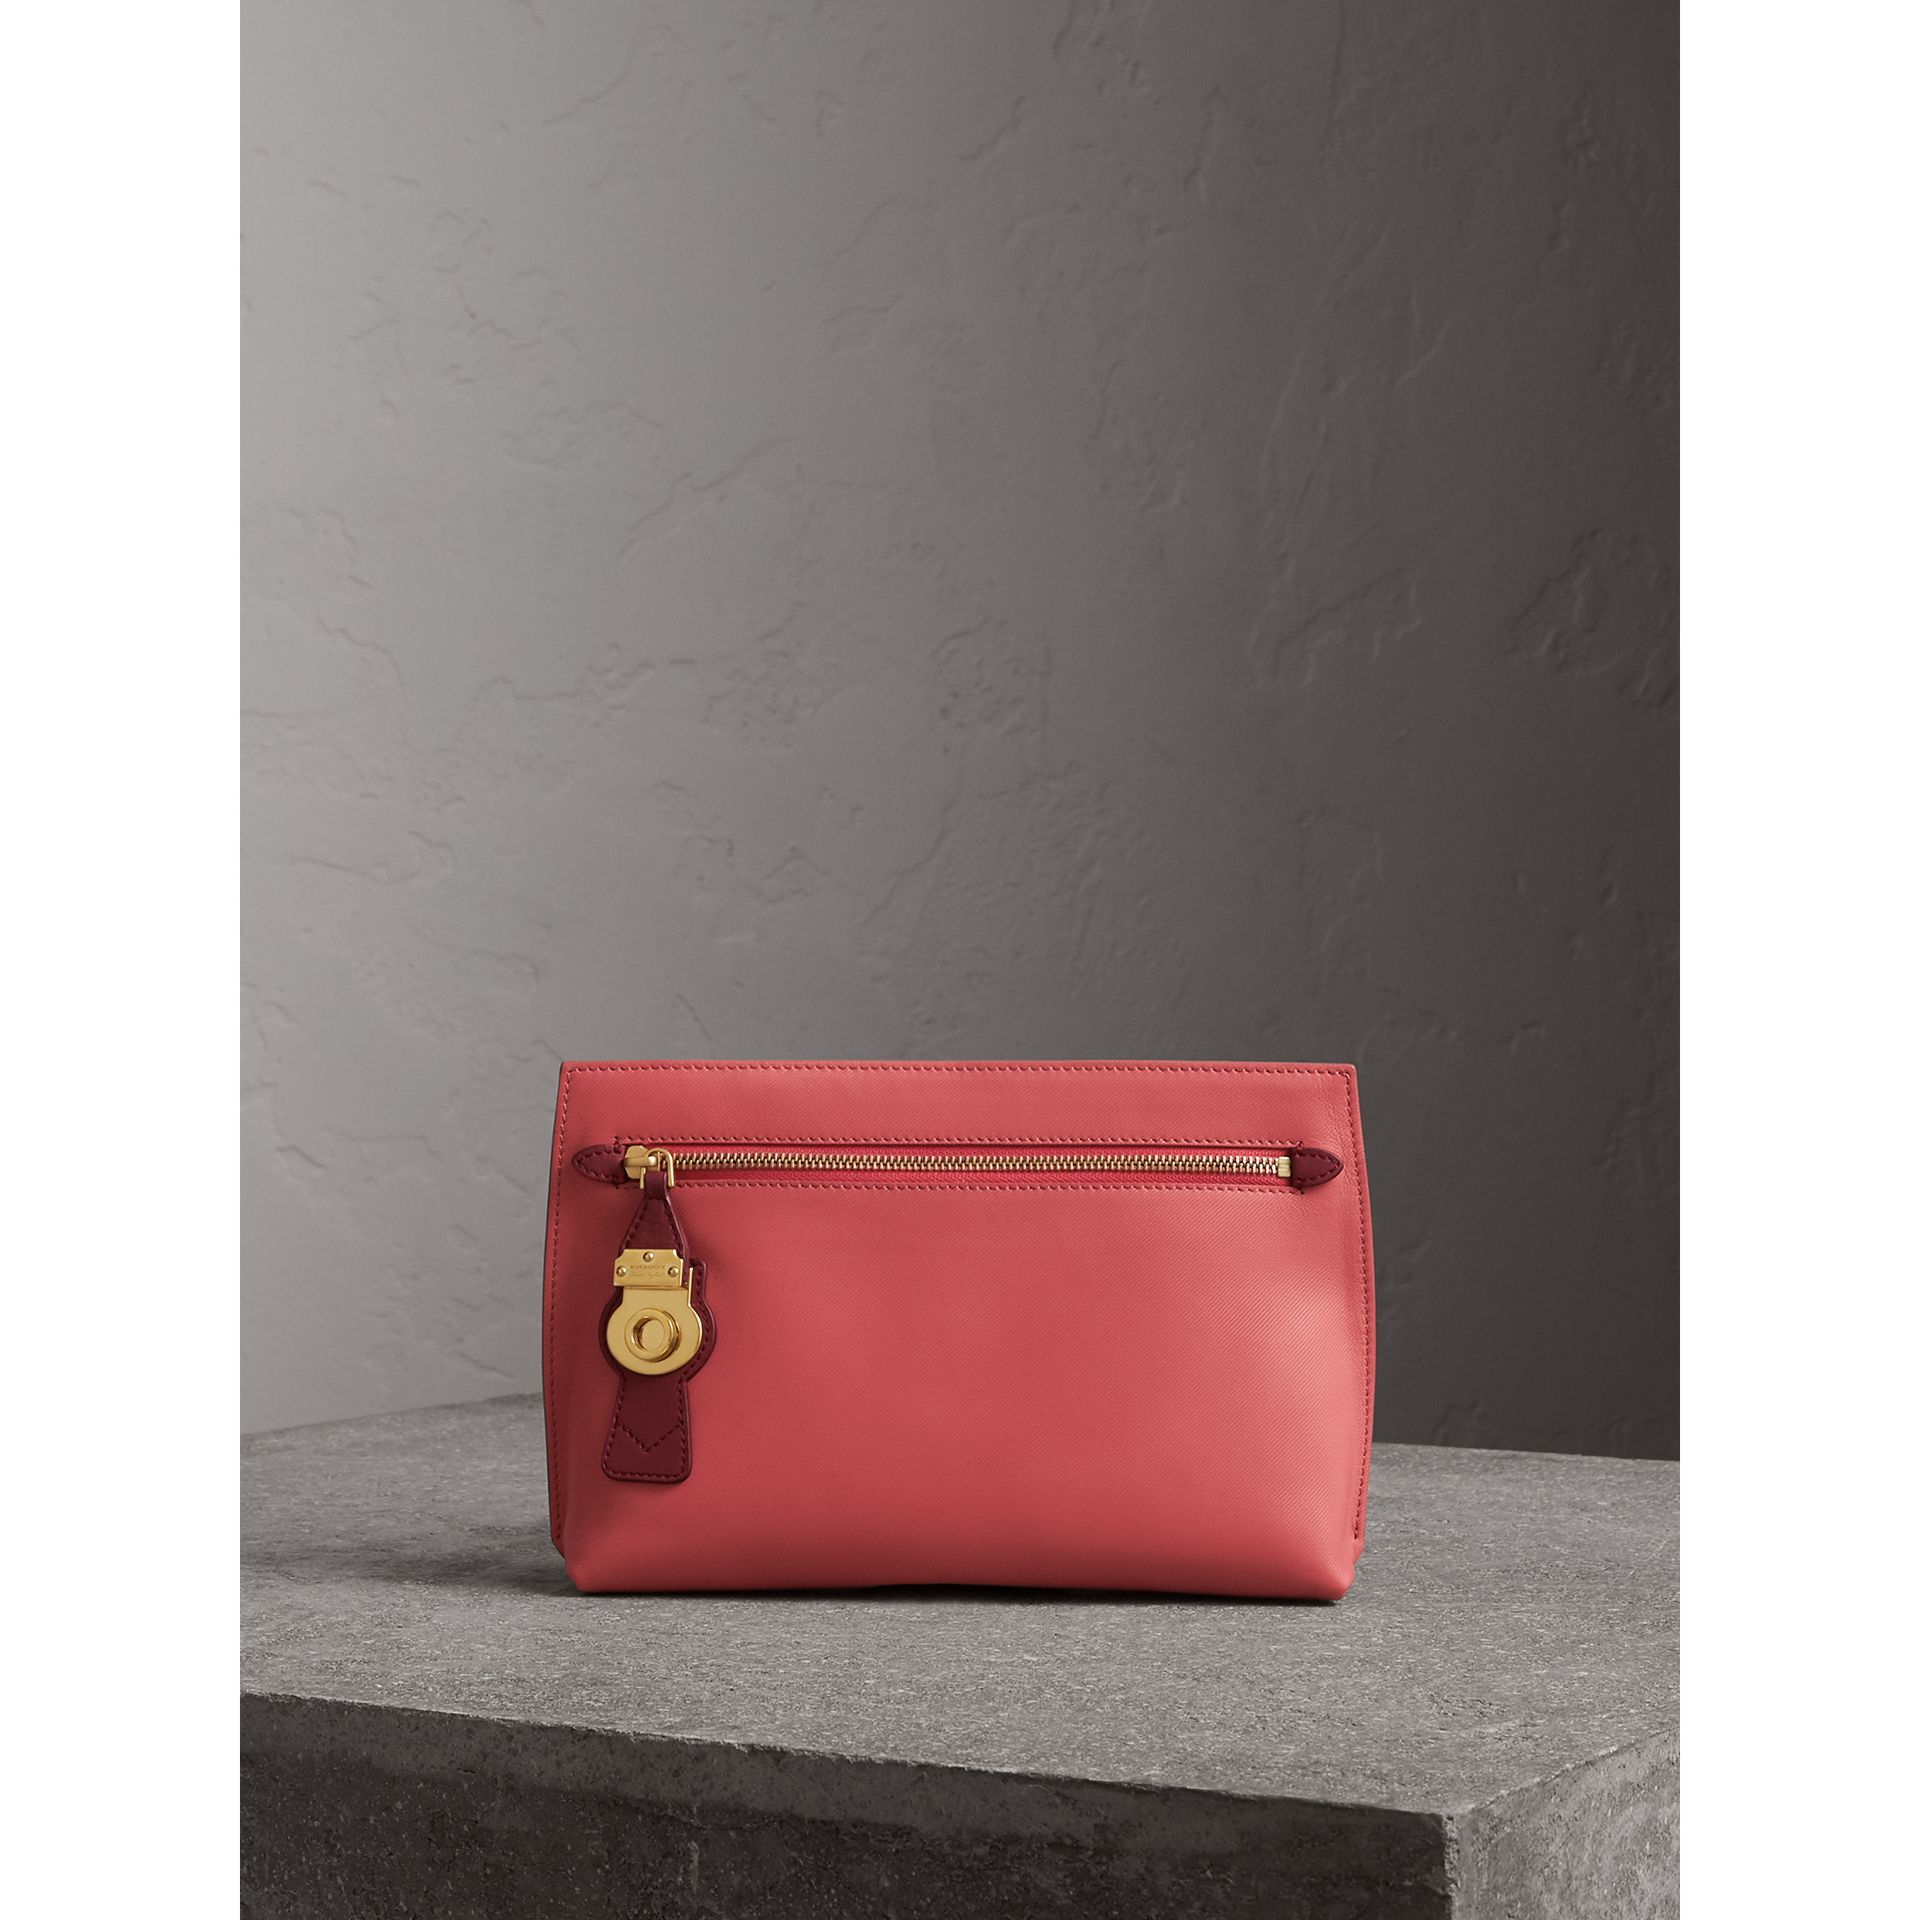 Two-tone Trench Leather Wristlet Pouch in Blossom Pink/antique Red - Women | Burberry - gallery image 1